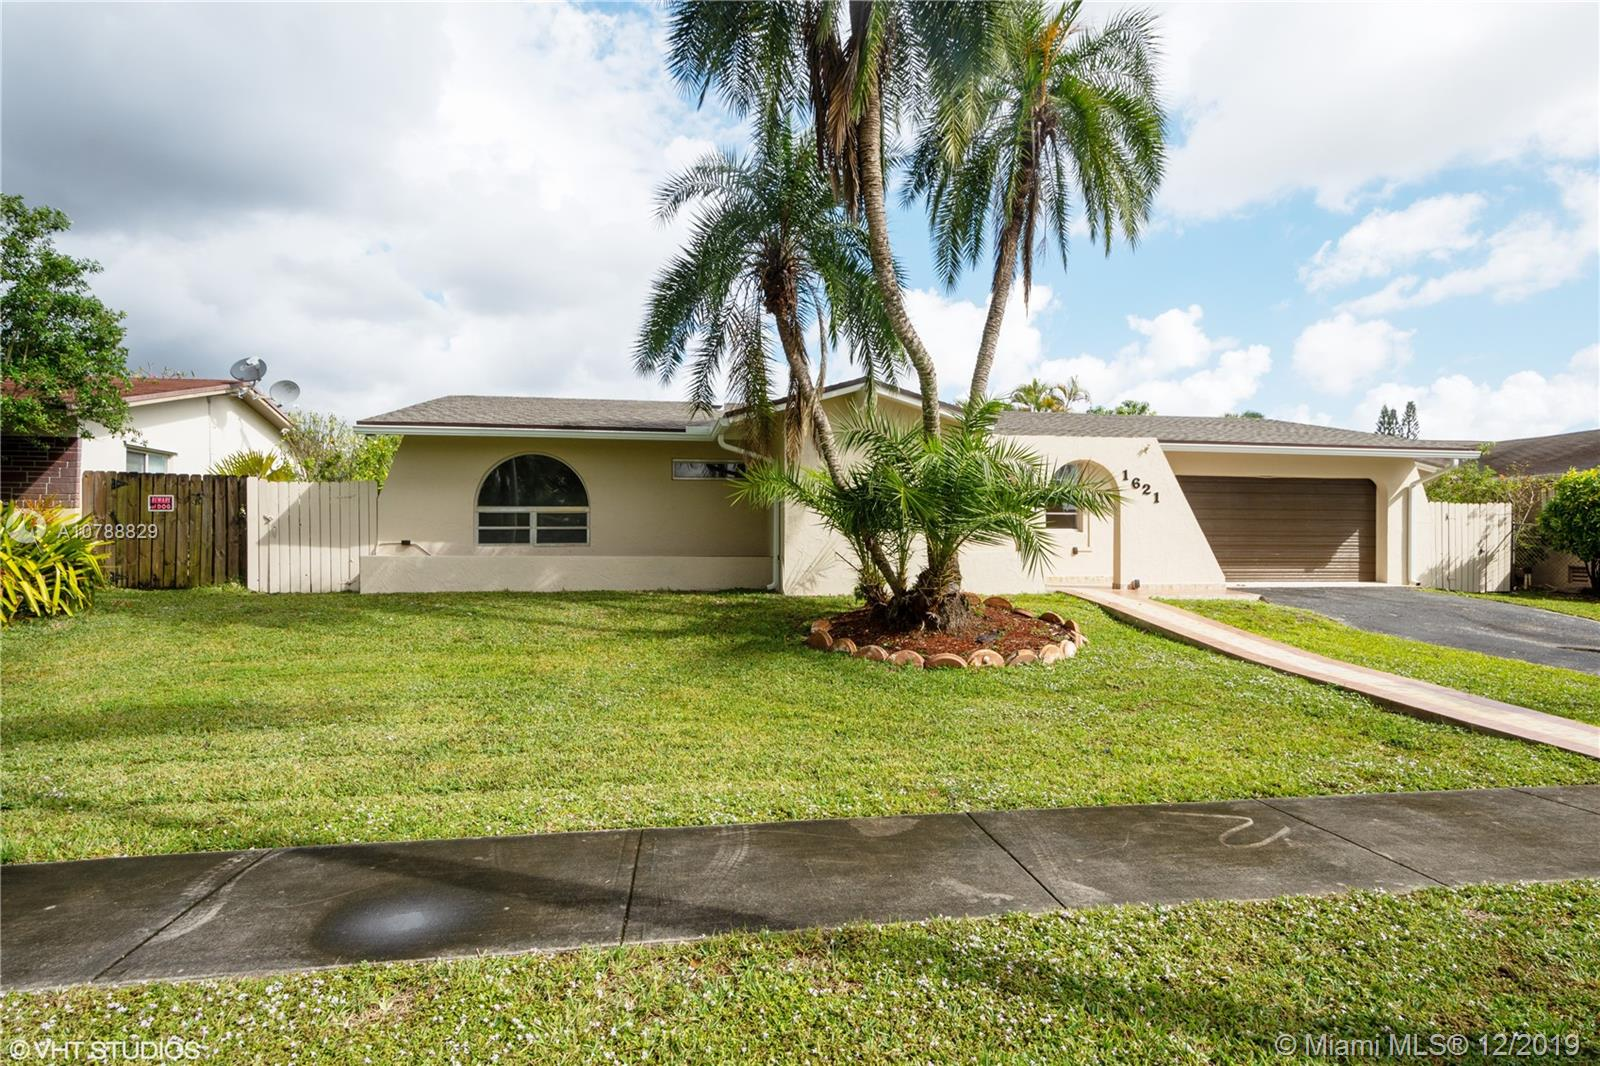 1621 NW 122nd Ave, Pembroke Pines, FL 33026